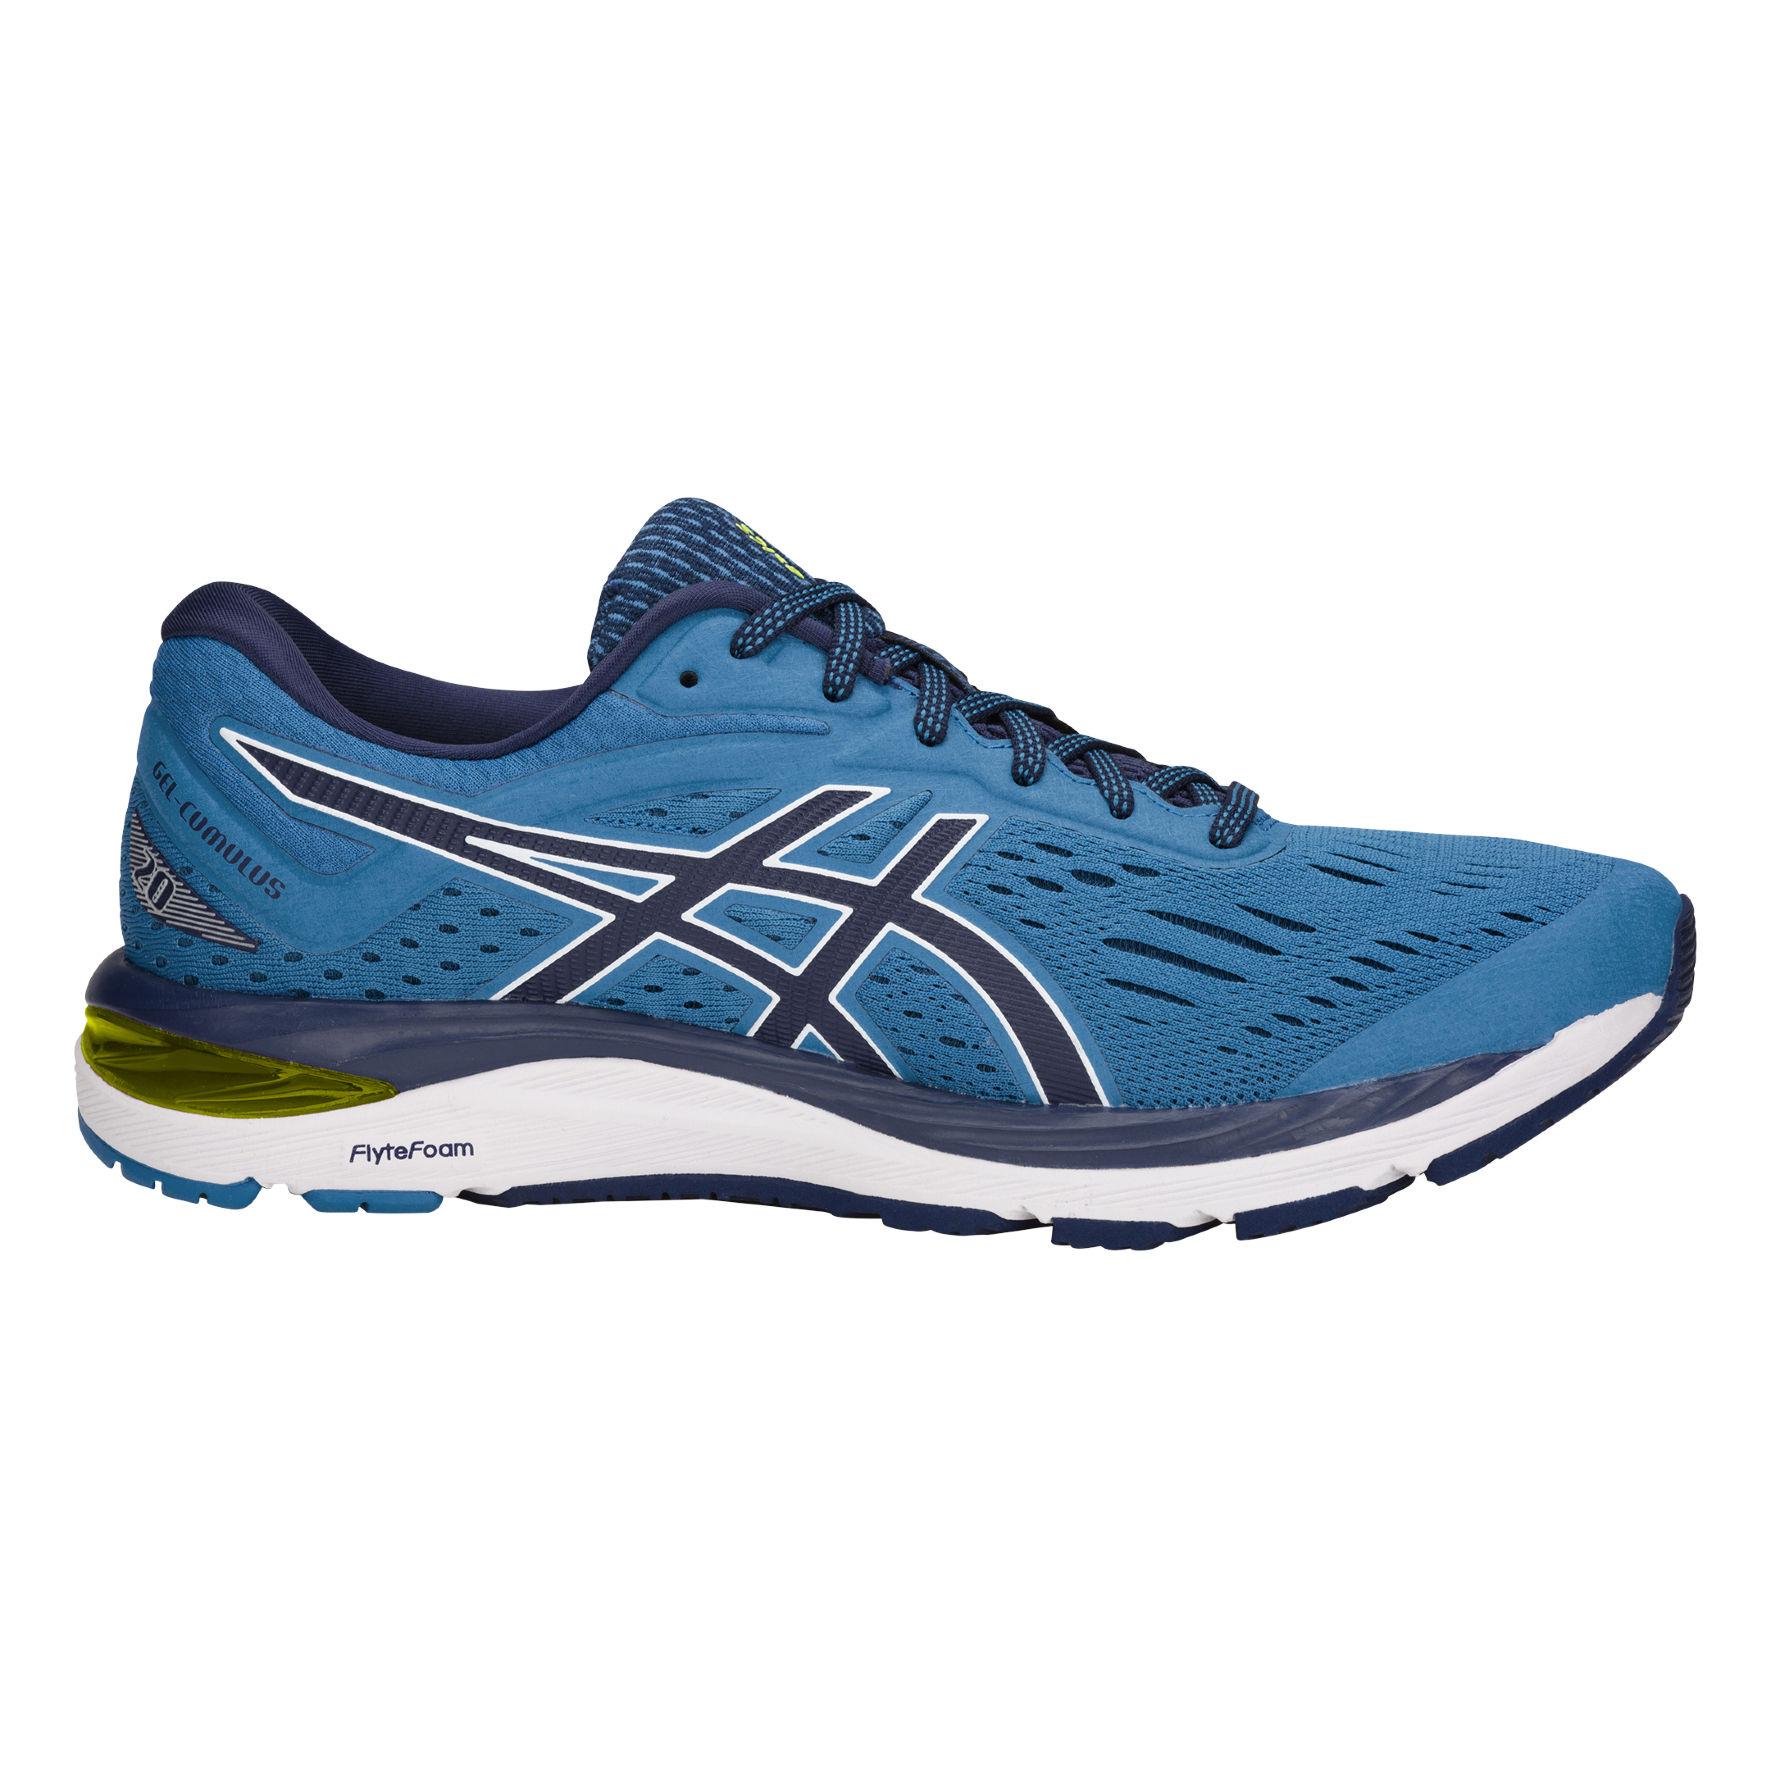 Asics Gel Cumulus 20 in Blau